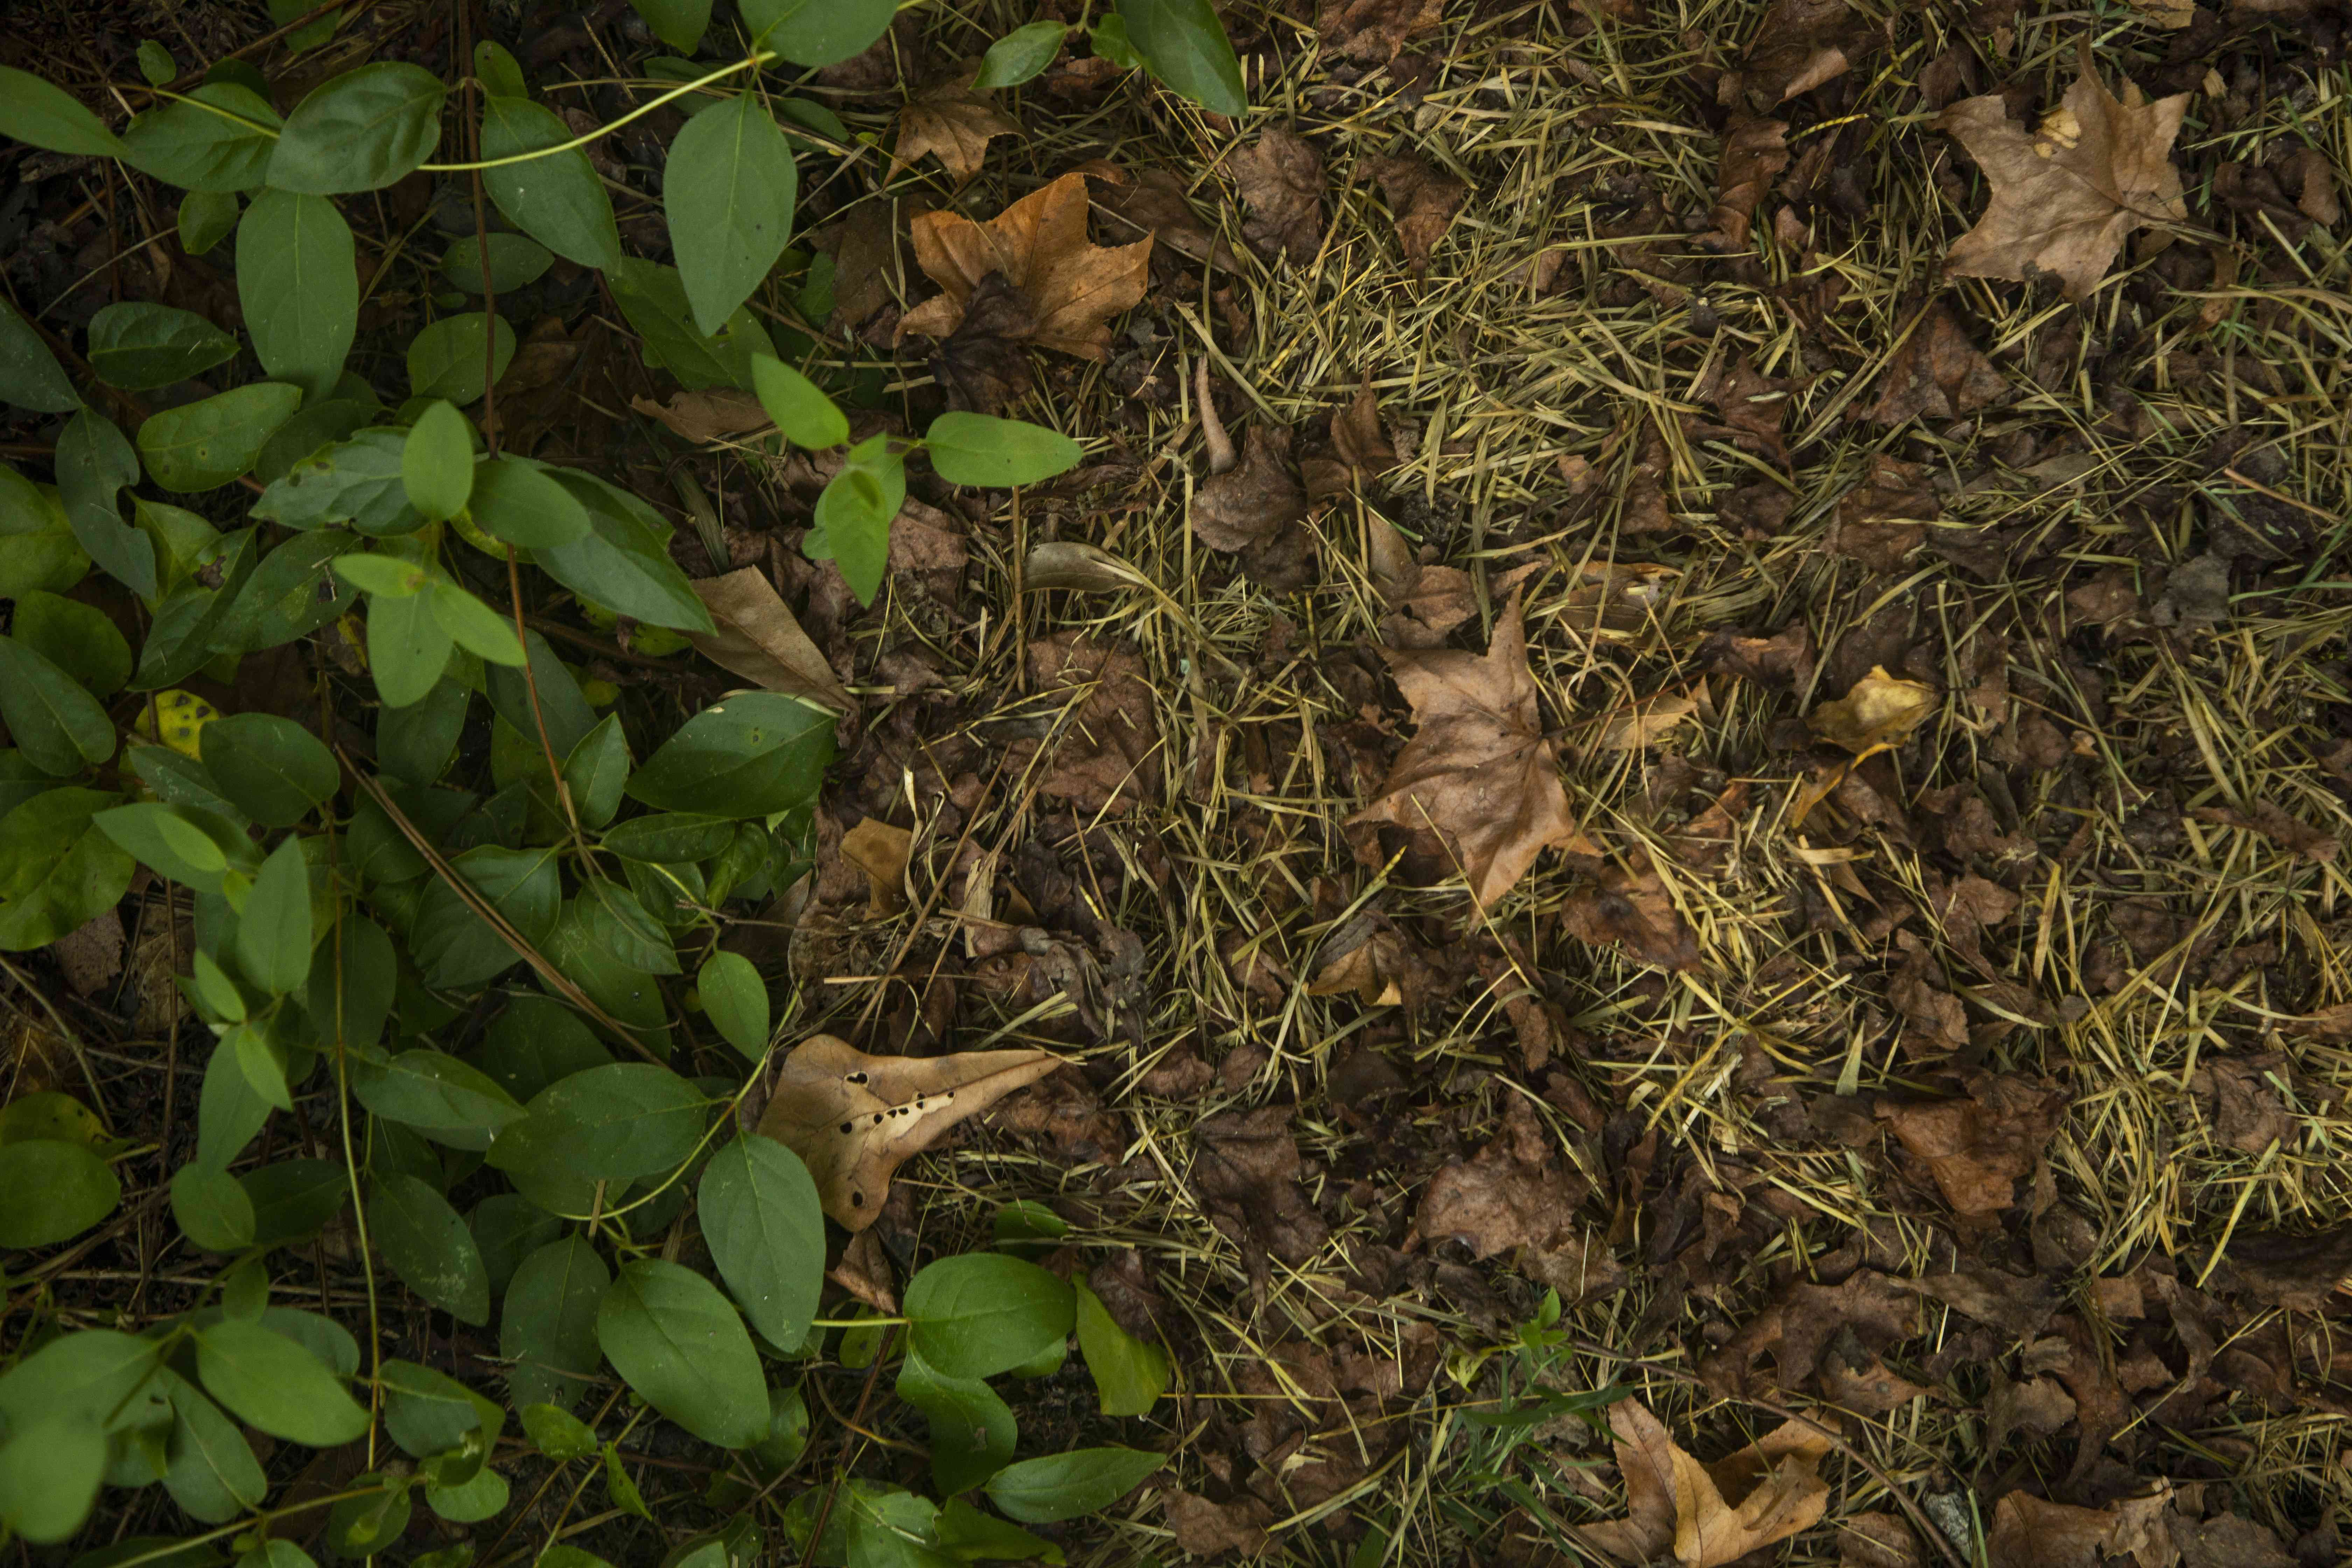 green vines and dead brown leaves on ground